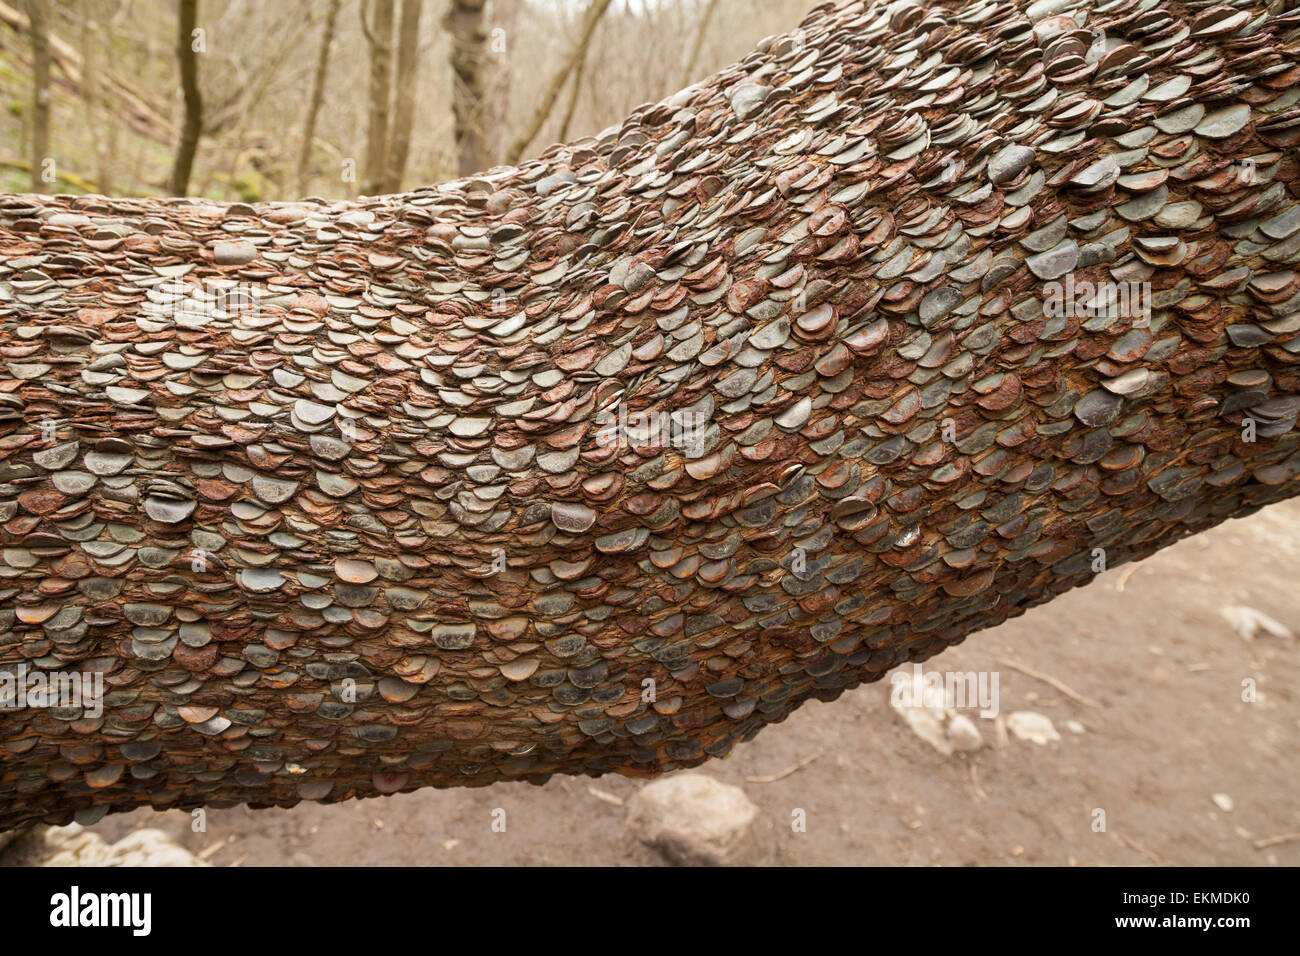 A section of trunk from the lucky Money Tree, Ingleton, North Yorkshire Dales, UK - Stock Image